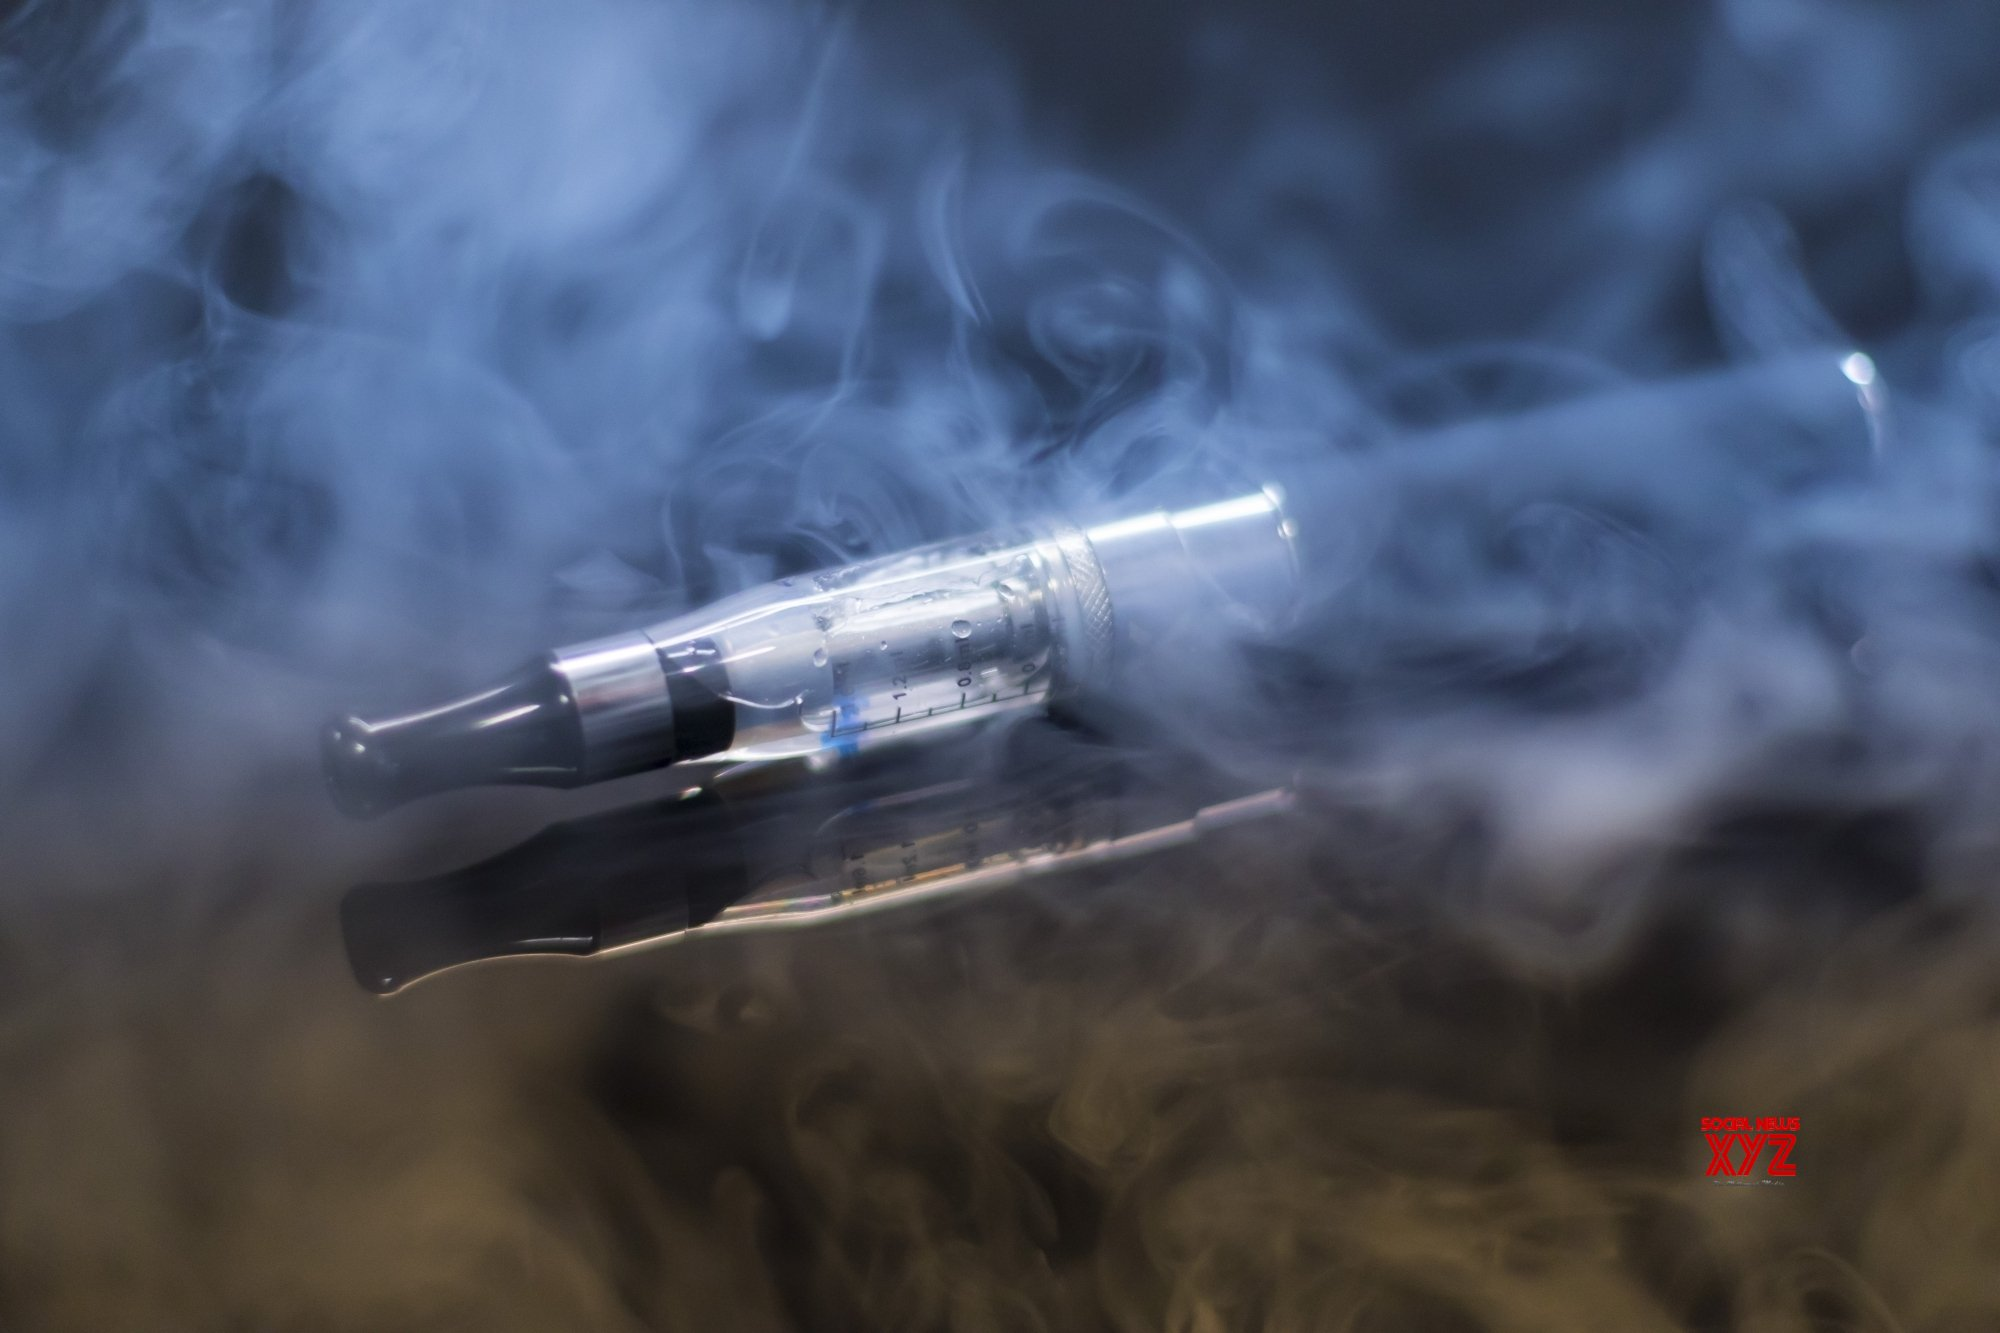 Here comes novel device equally harmful as traditional smoking, e-cigarettes